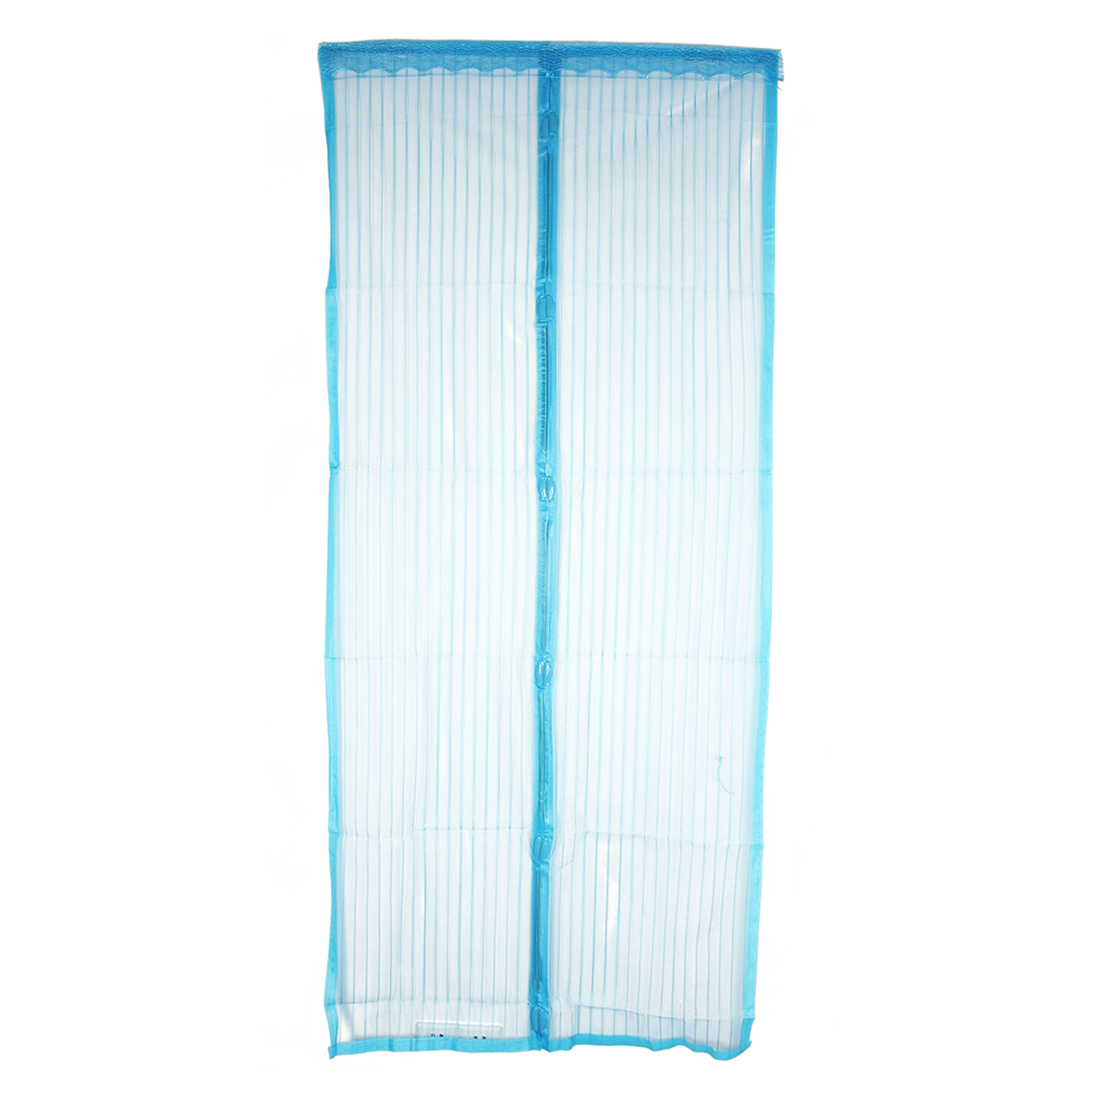 Magnetic Fastening Curtain Hands Free Fly Insect Screen Door Mesh Blue